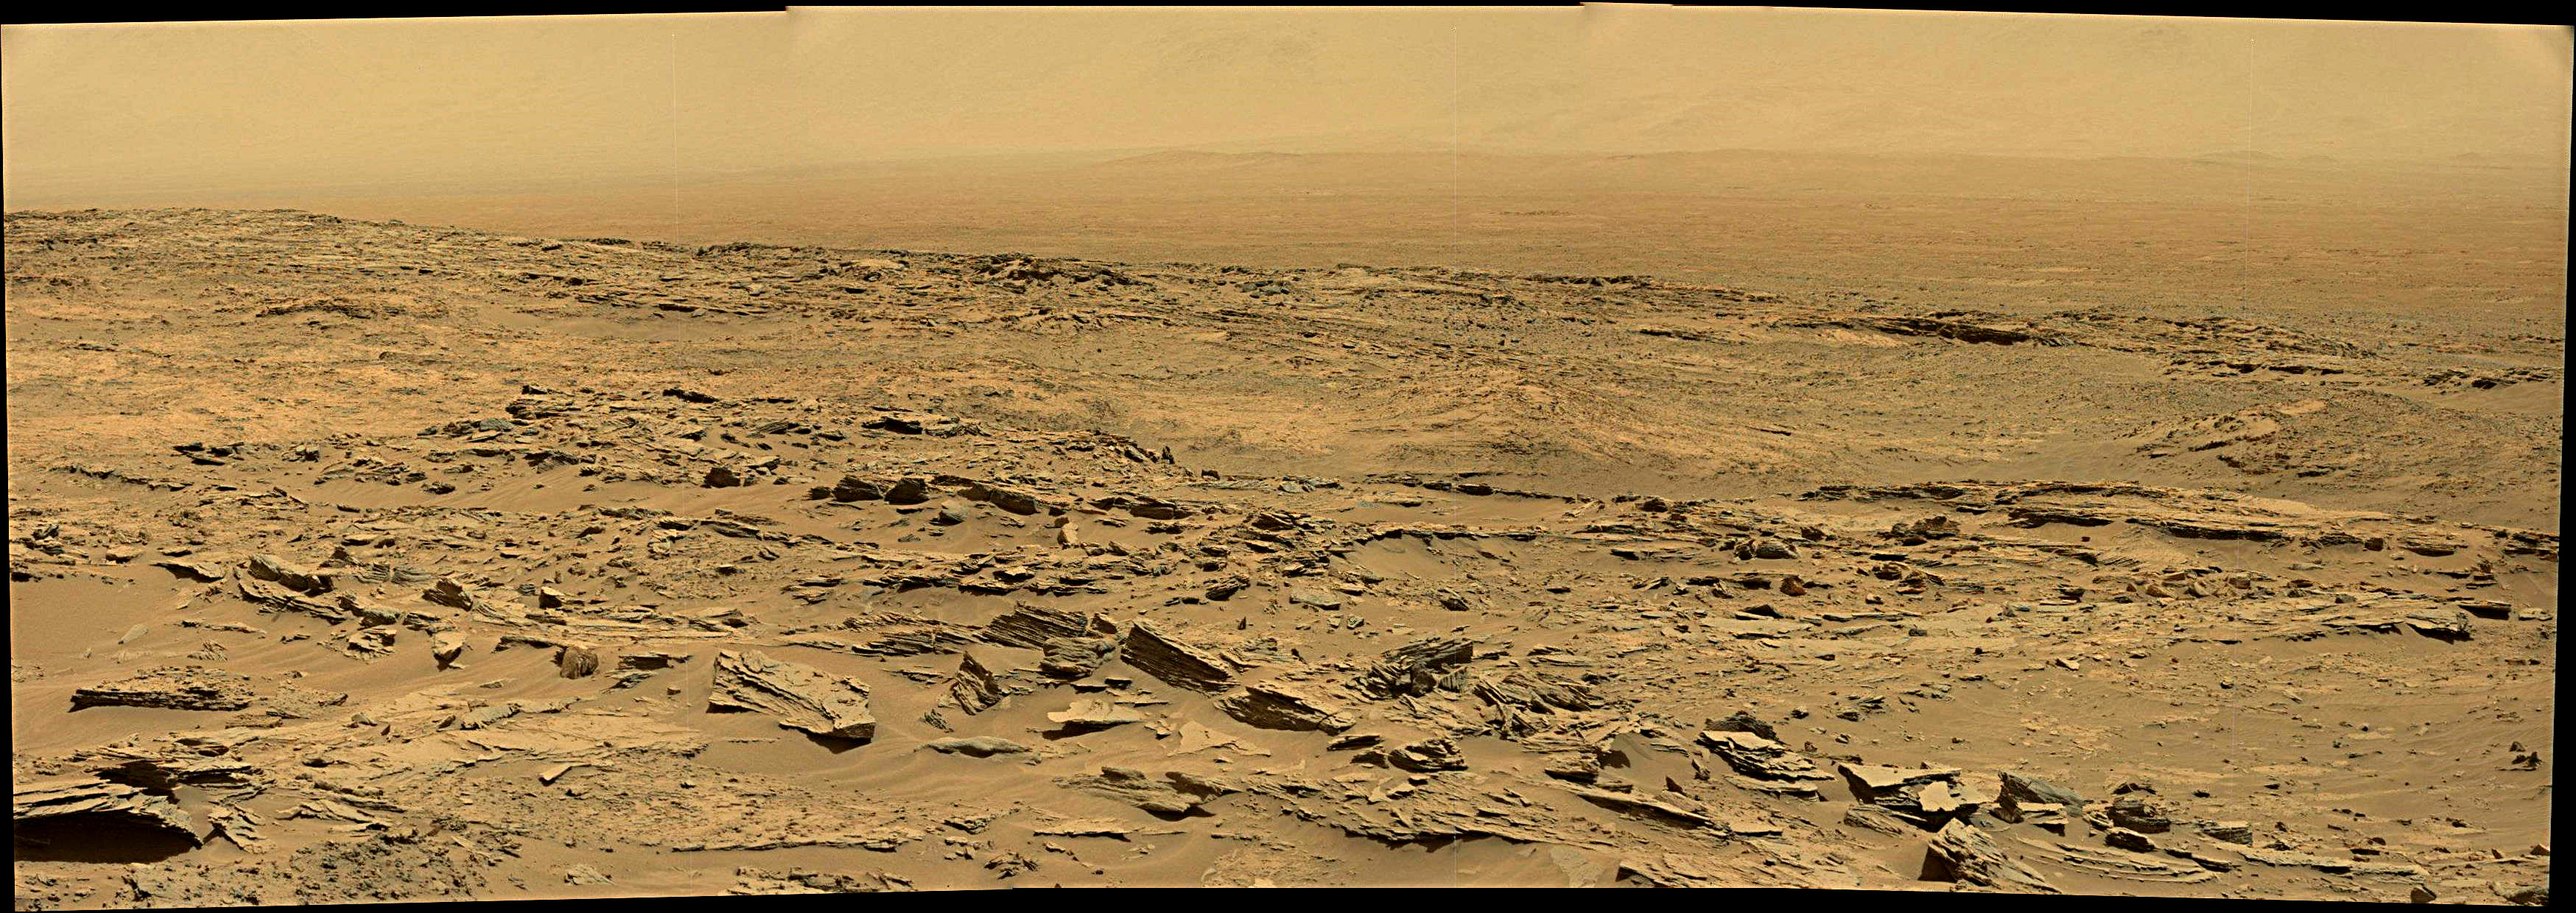 panoramic curiosity rover view 2e - sol 1352 - was life on mars